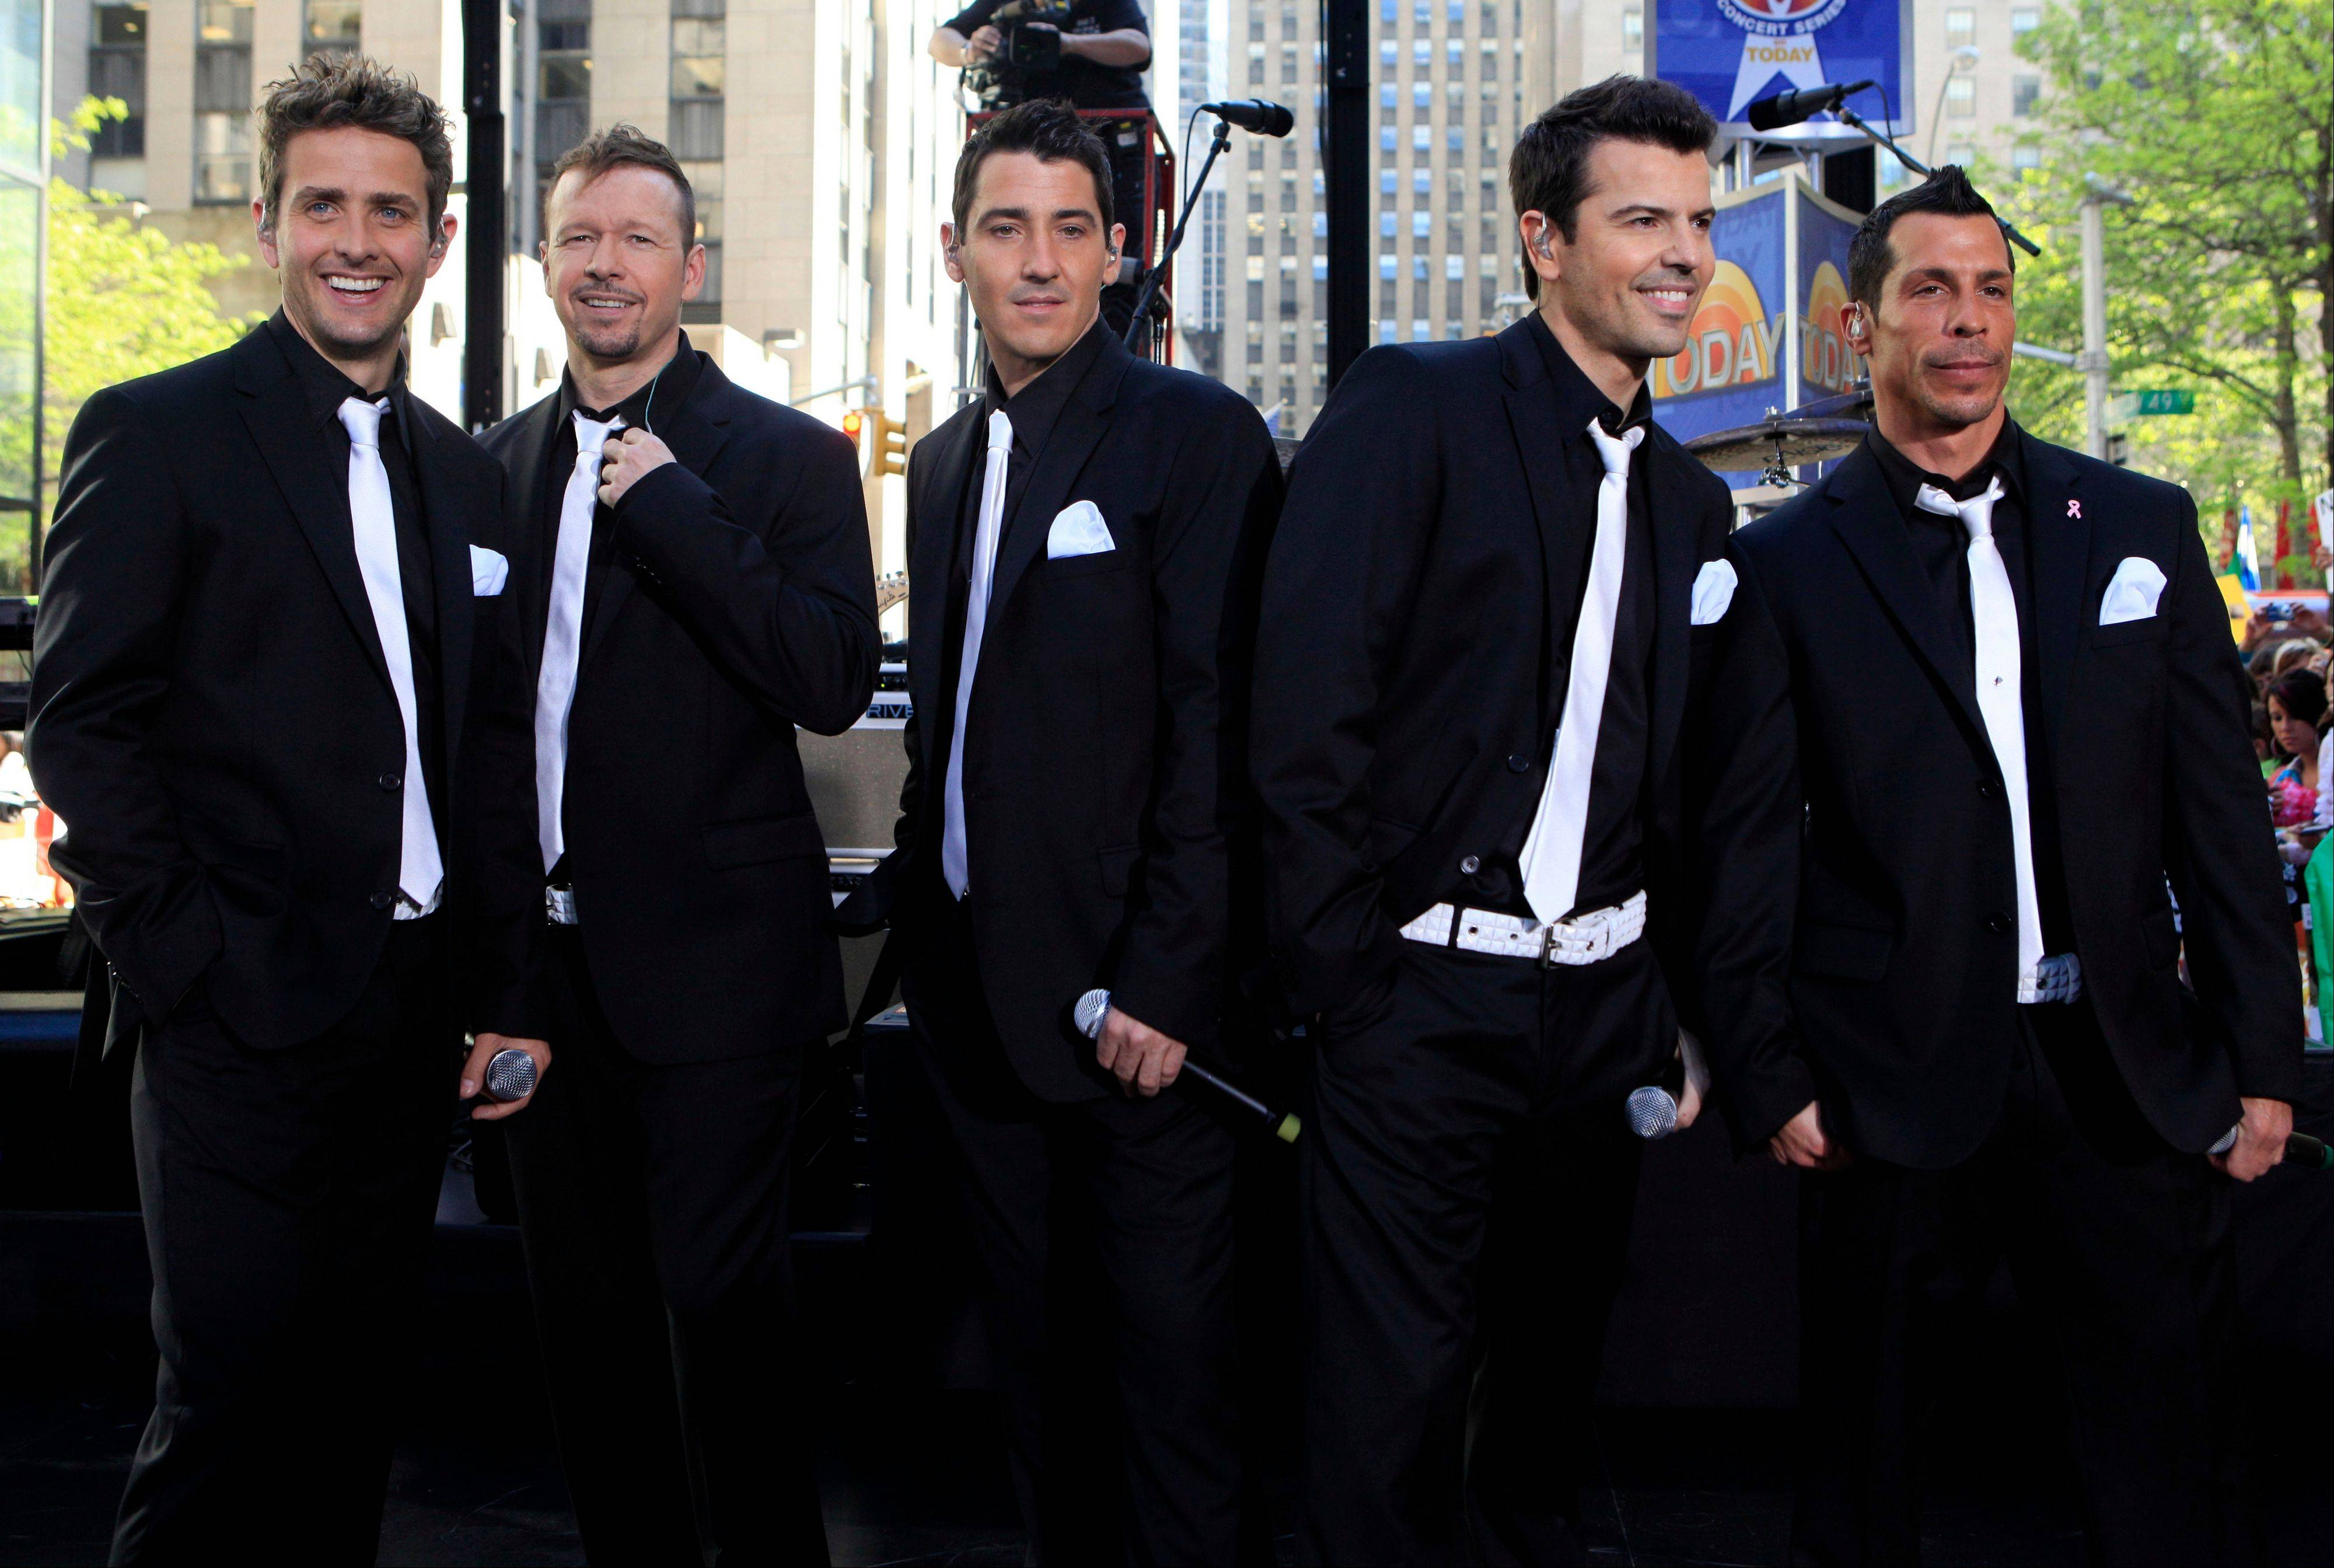 Members of New Kids on the Block -- Joey McIntyre, left, Donnie Wahlberg, Jonathan Knight, Jordan Knight and Danny Wood -- are teaming up with 98 Degrees and Boyz II Men for a summer tour.